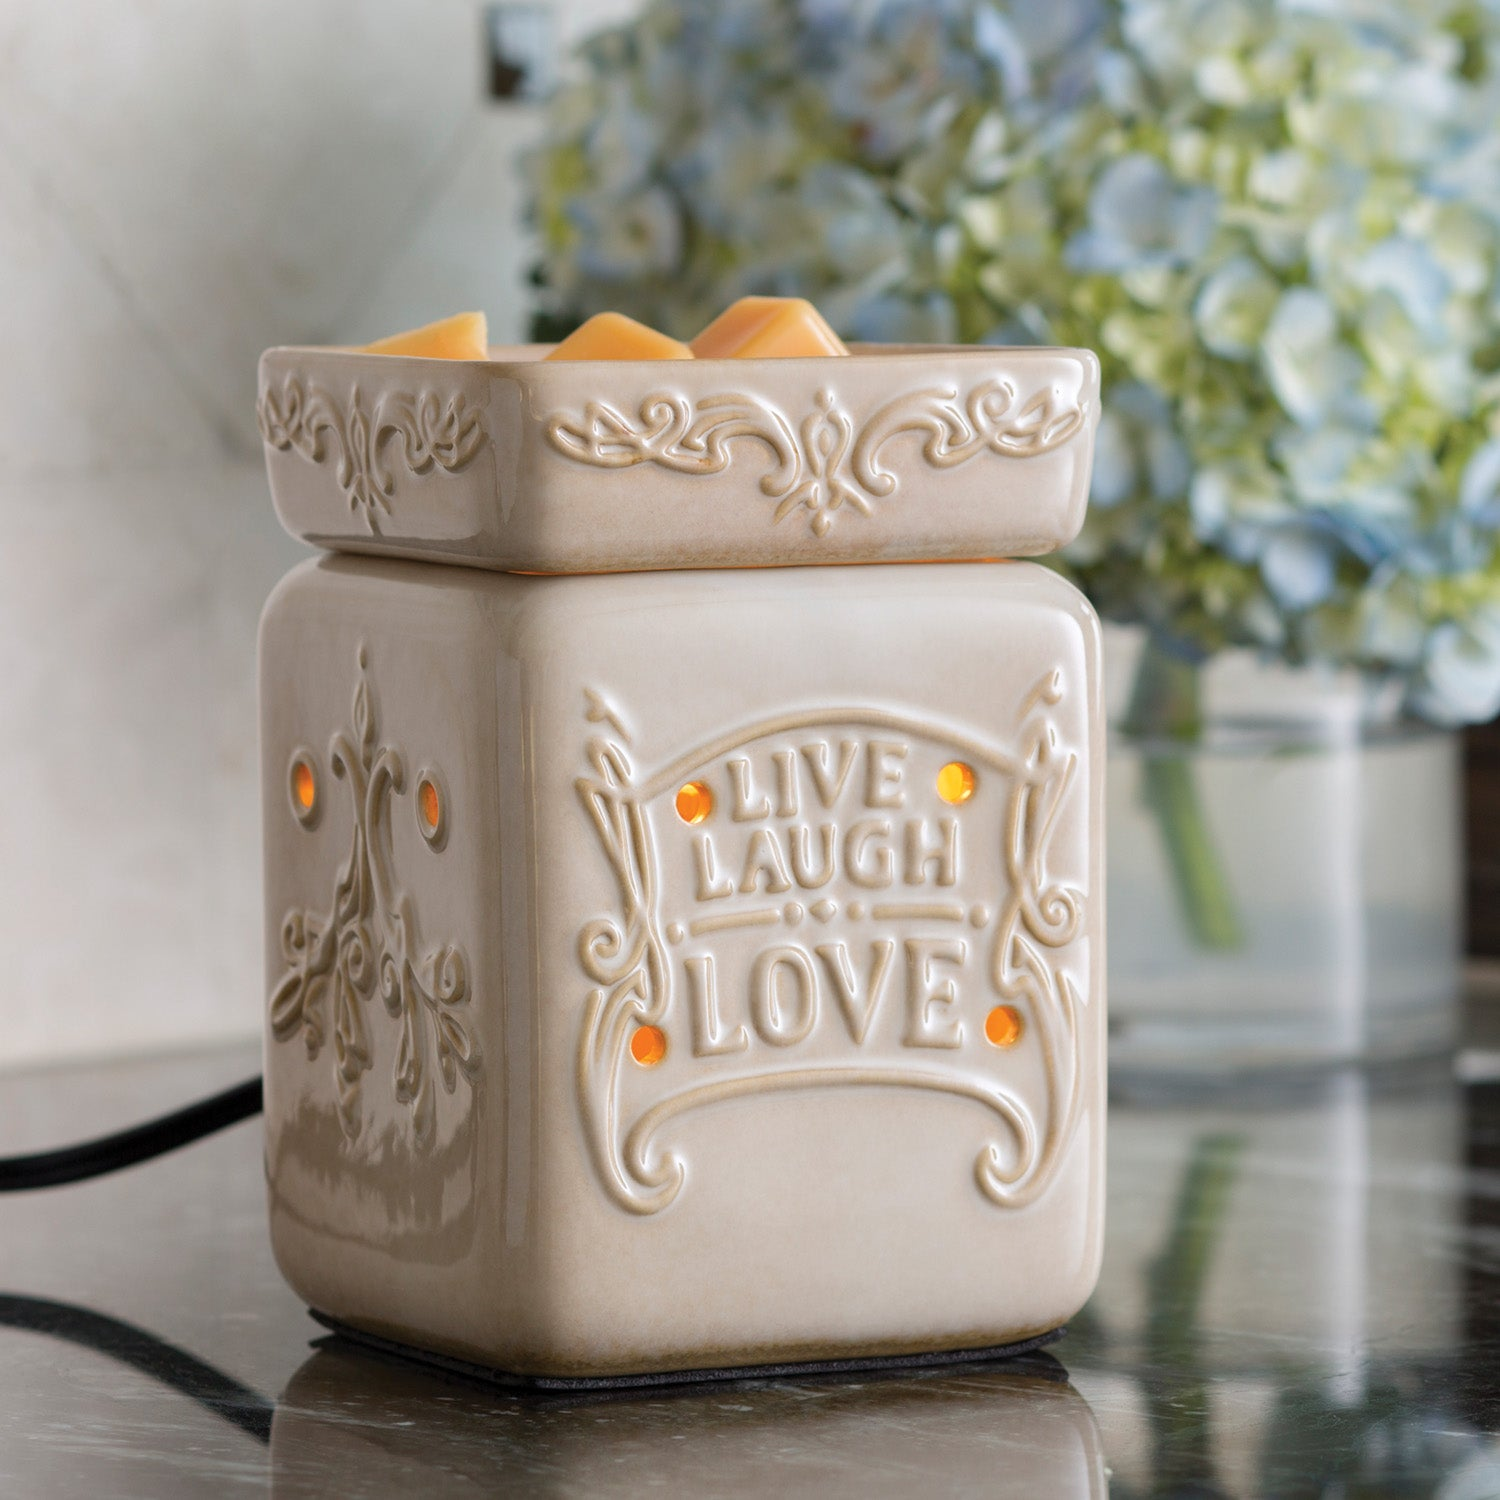 Electric Live Laugh Love Wax Melter